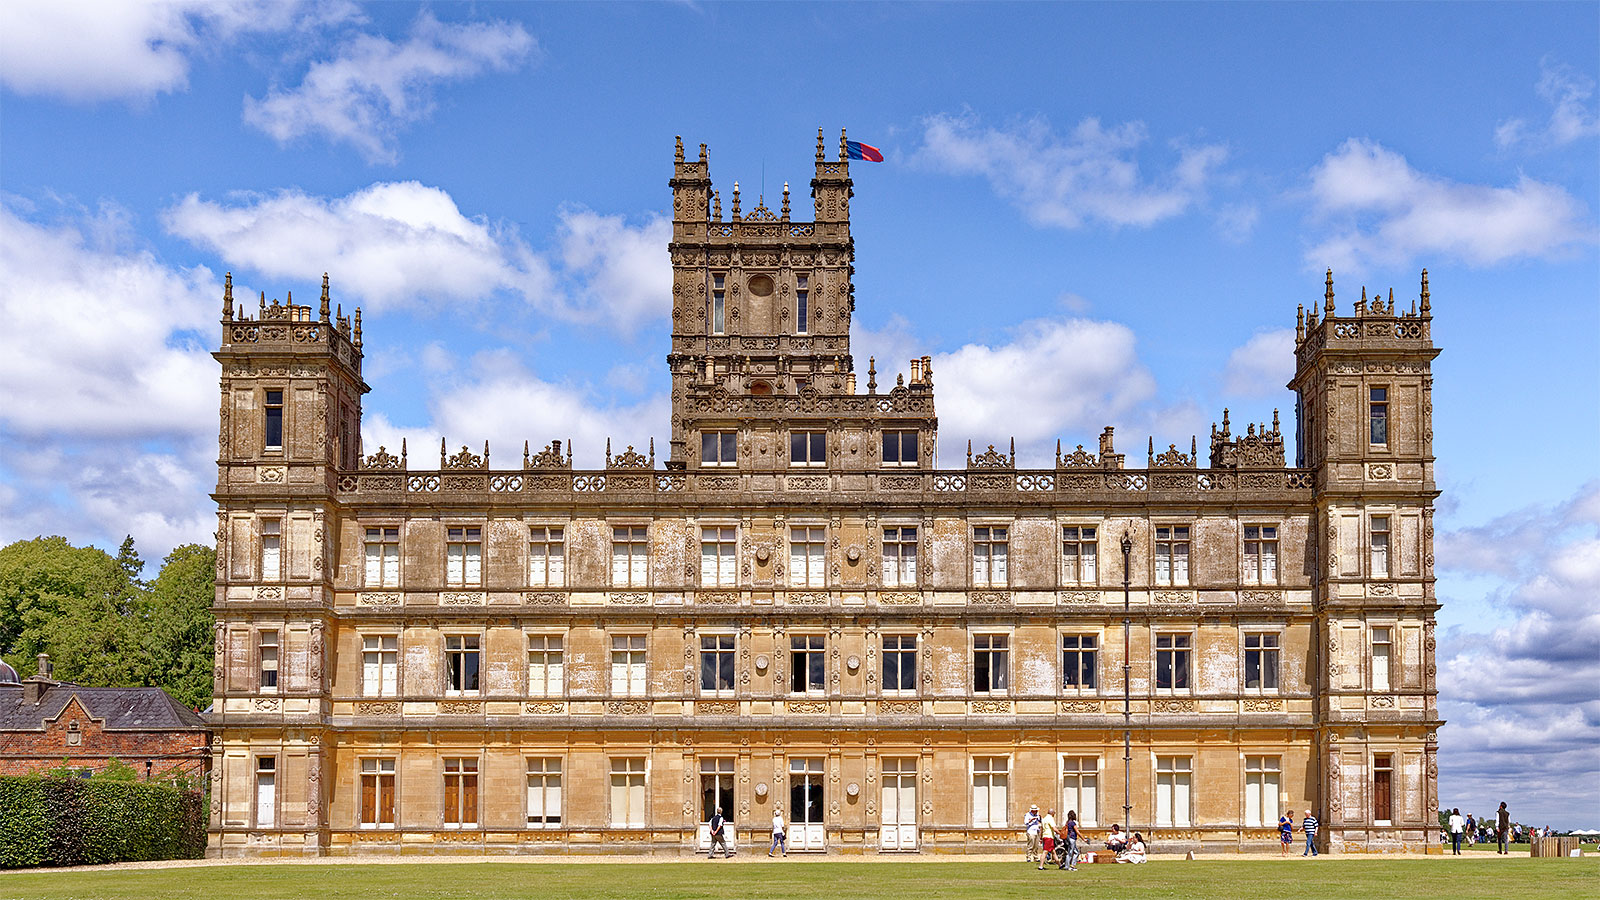 Branding lessons from Countess Carnarvon of Highclere Castle (the home of Downton Abbey)